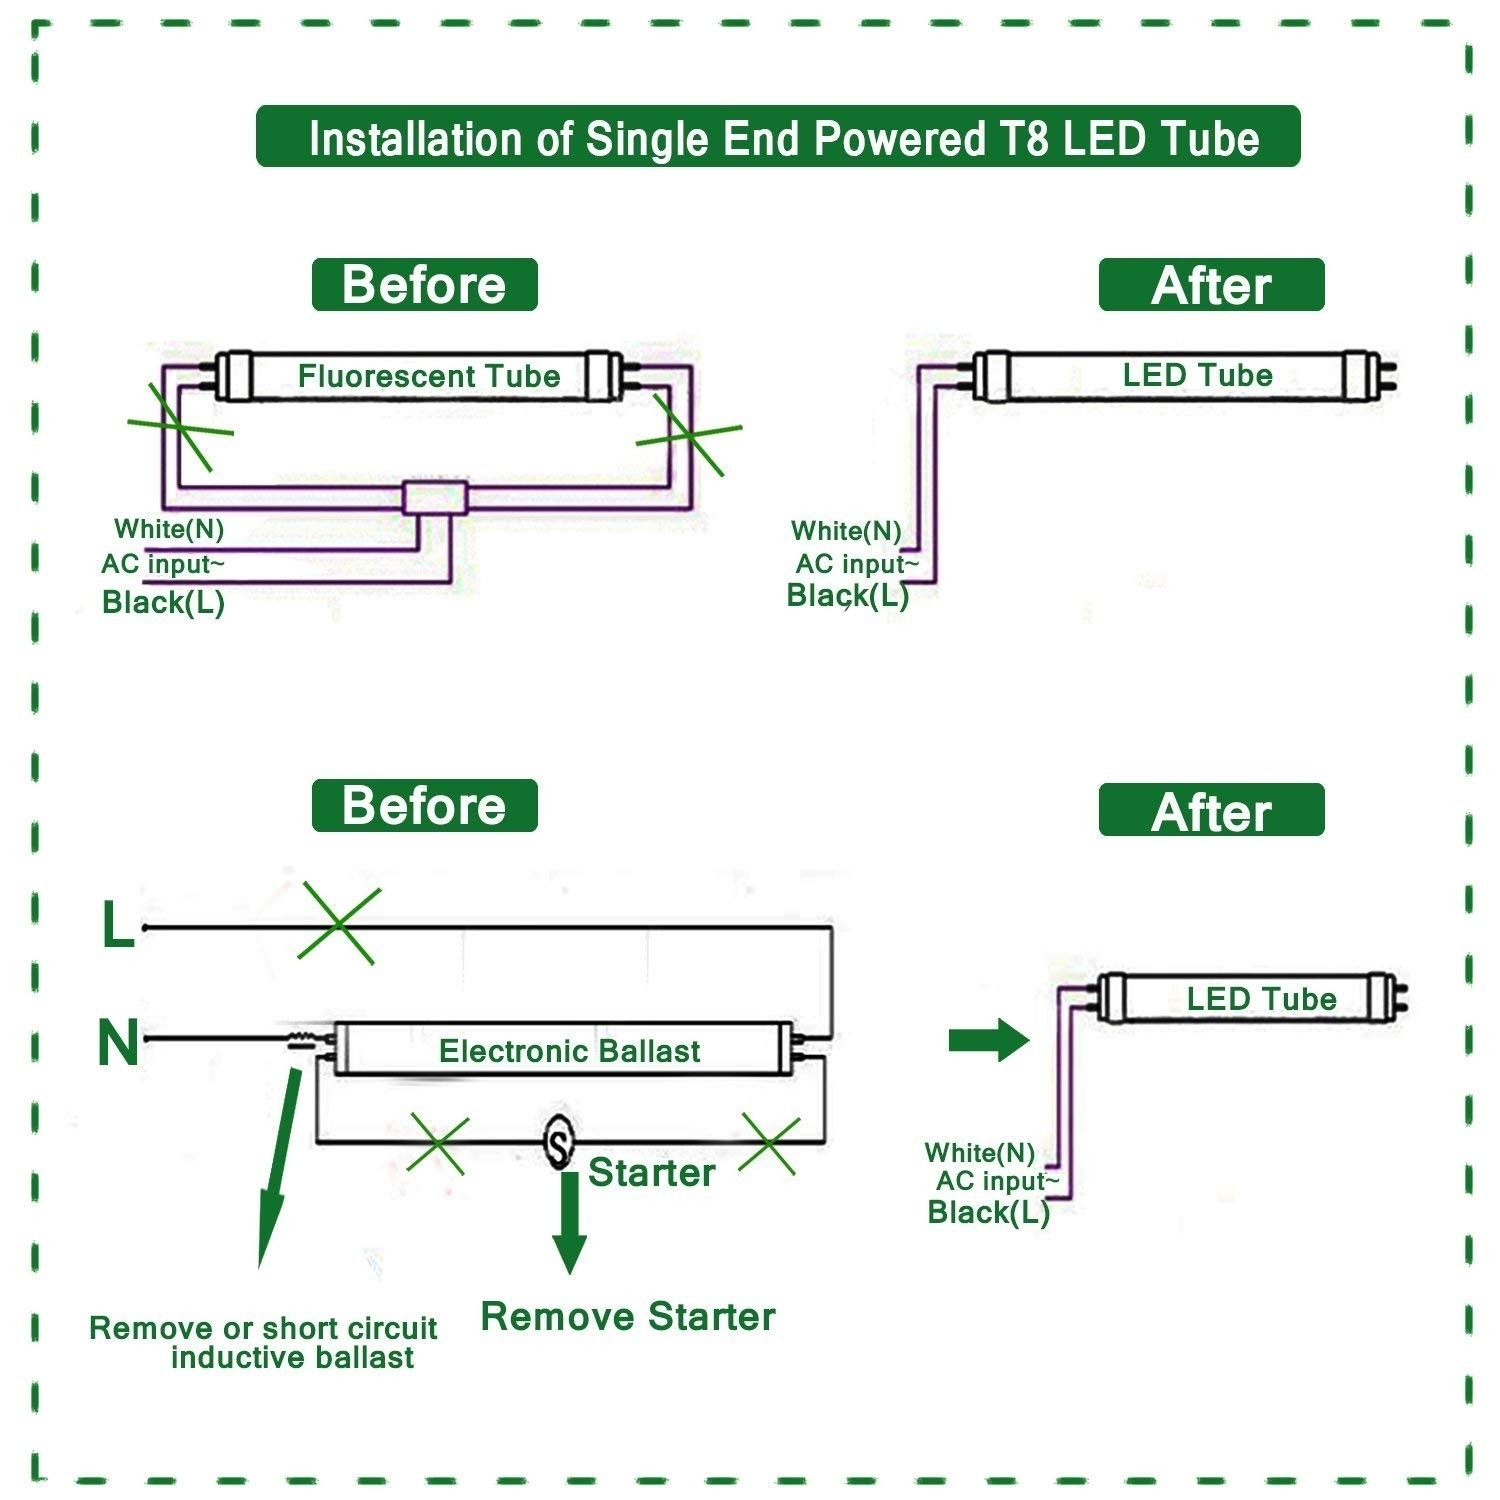 hight resolution of electronic ballast wiring diagram led option wiring diagram light fixture ballast replacement likewise t8 led tube